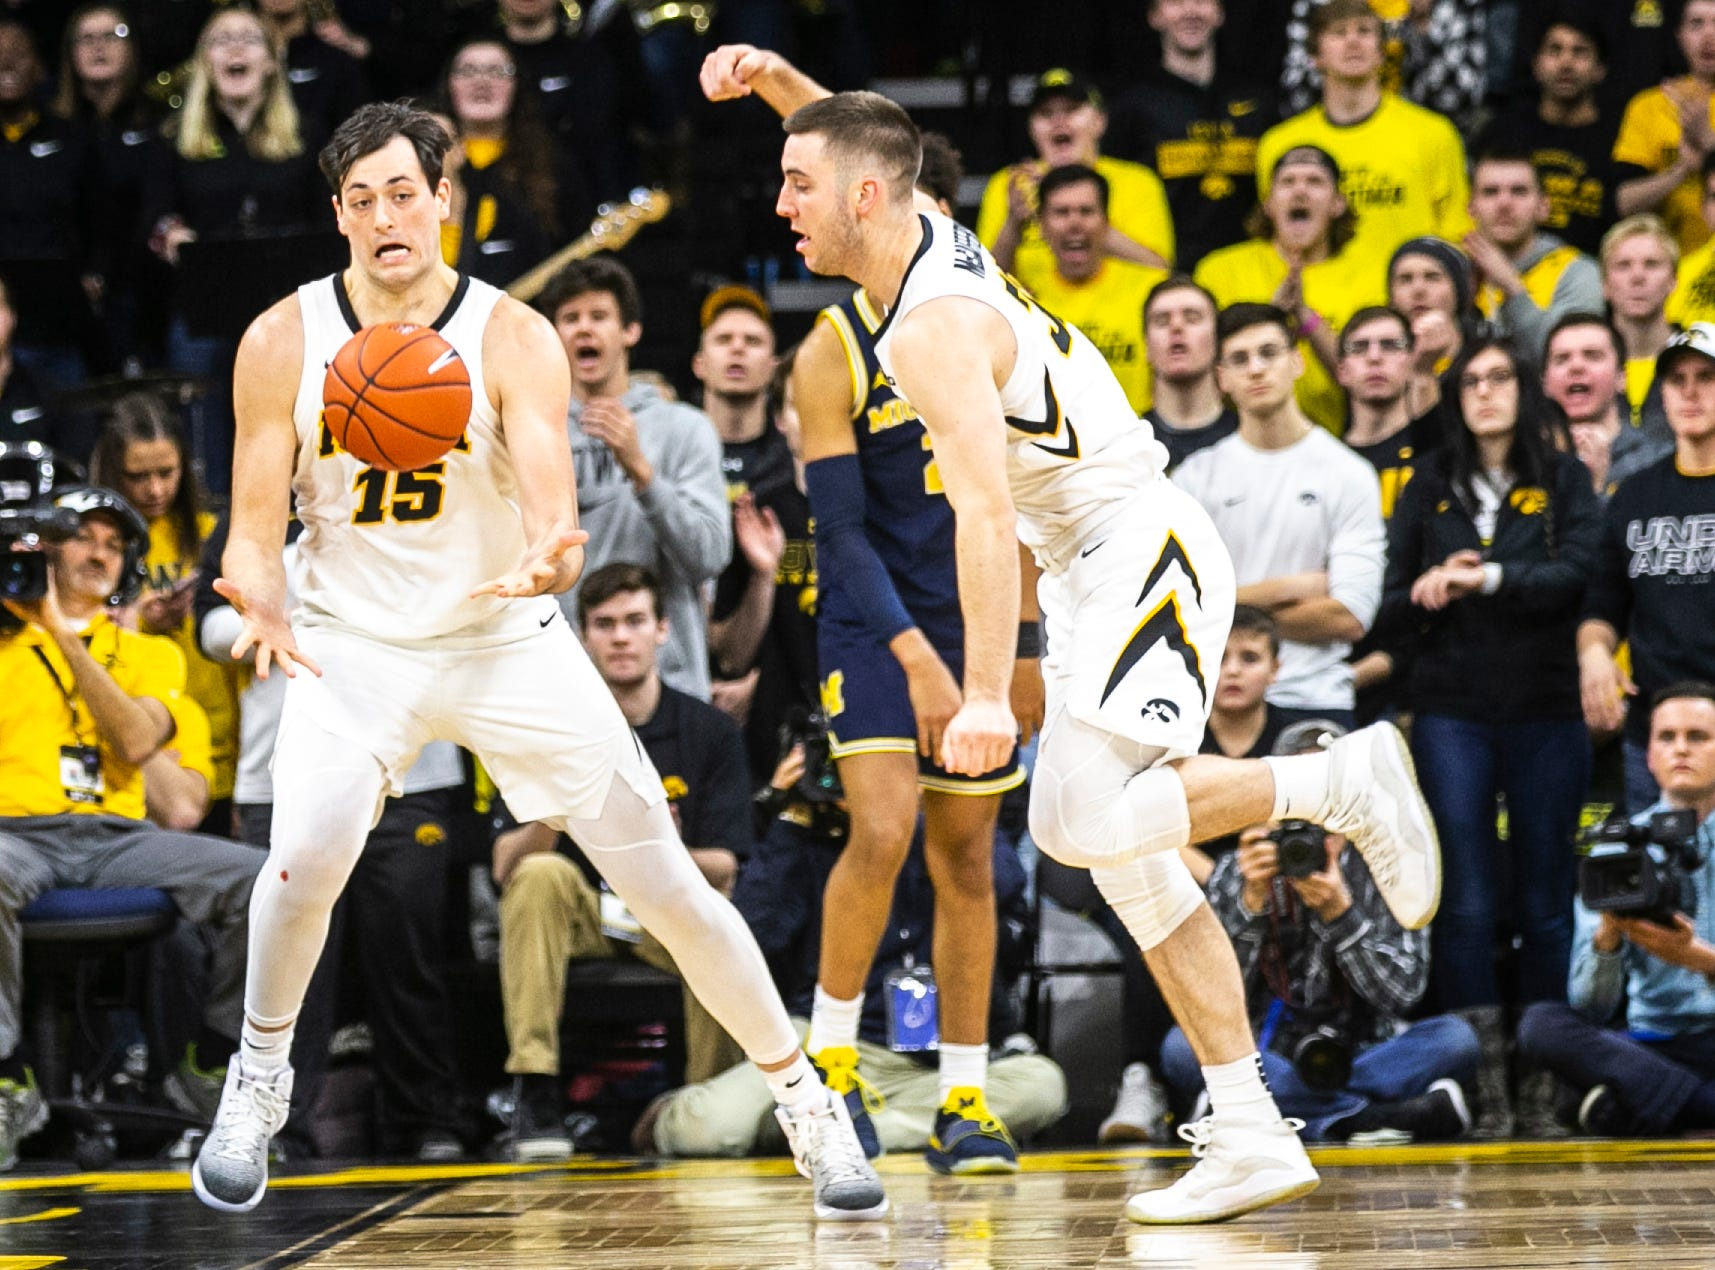 Iowa forward Ryan Kriener (15) grabs a rebound next to Connor McCaffery, right, during a NCAA Big Ten Conference men's basketball game on Friday, Feb. 1, 2019, at Carver-Hawkeye Arena in Iowa City, Iowa.